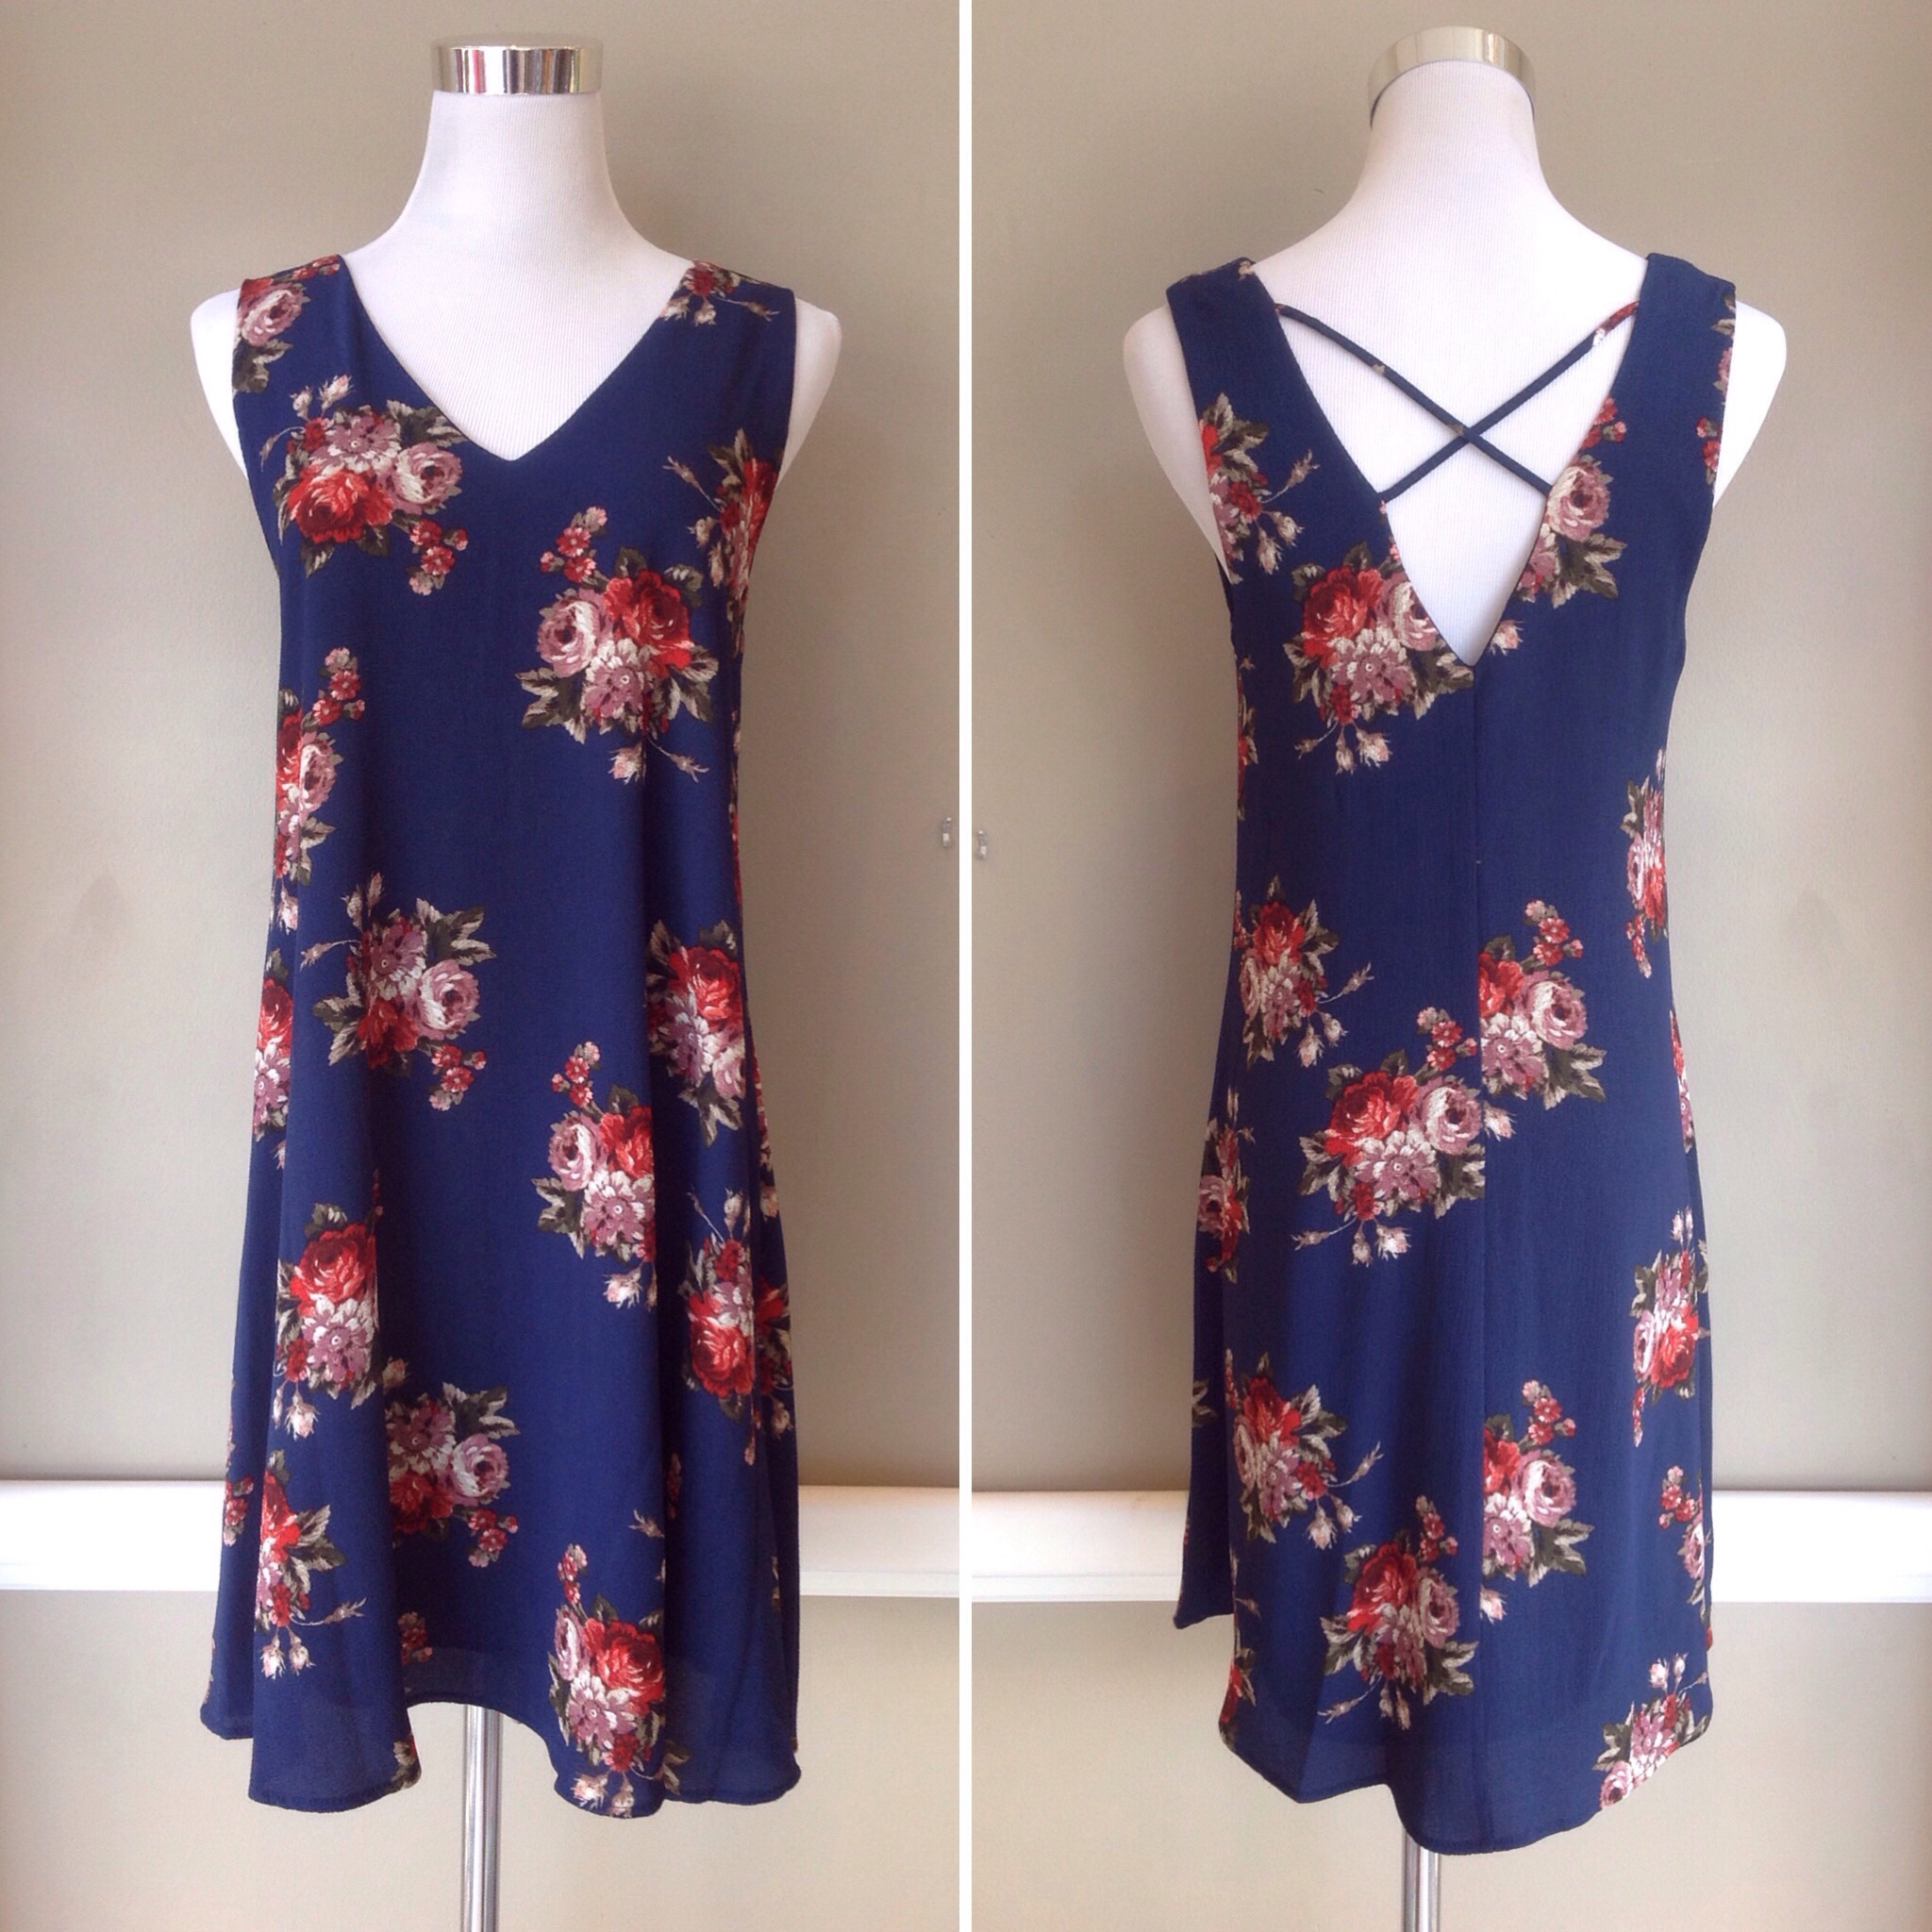 Navy floral print v neck dress with cross back, $38